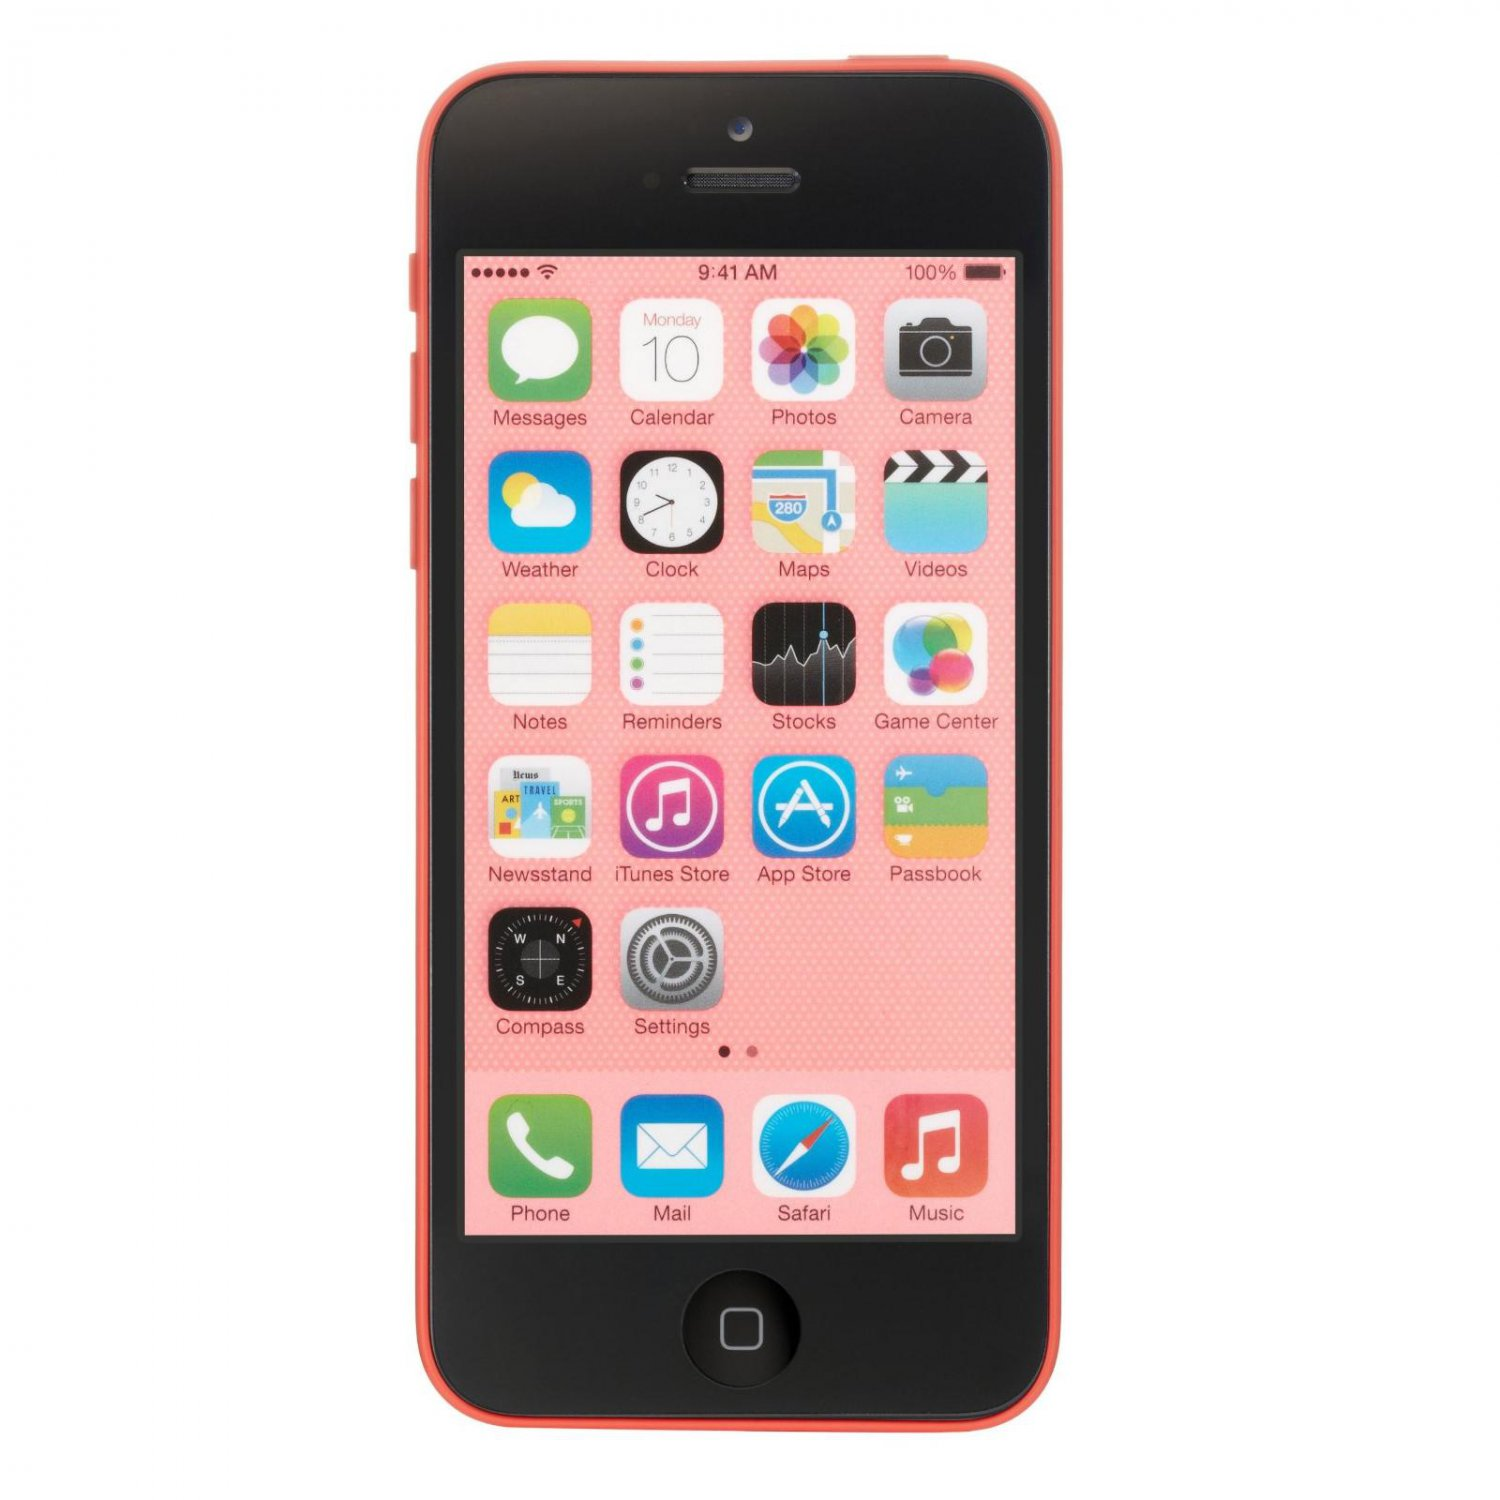 iphone 5c att apple iphone 5c 8gb at amp t pink smartphone ios 8 gsm a1532 7863